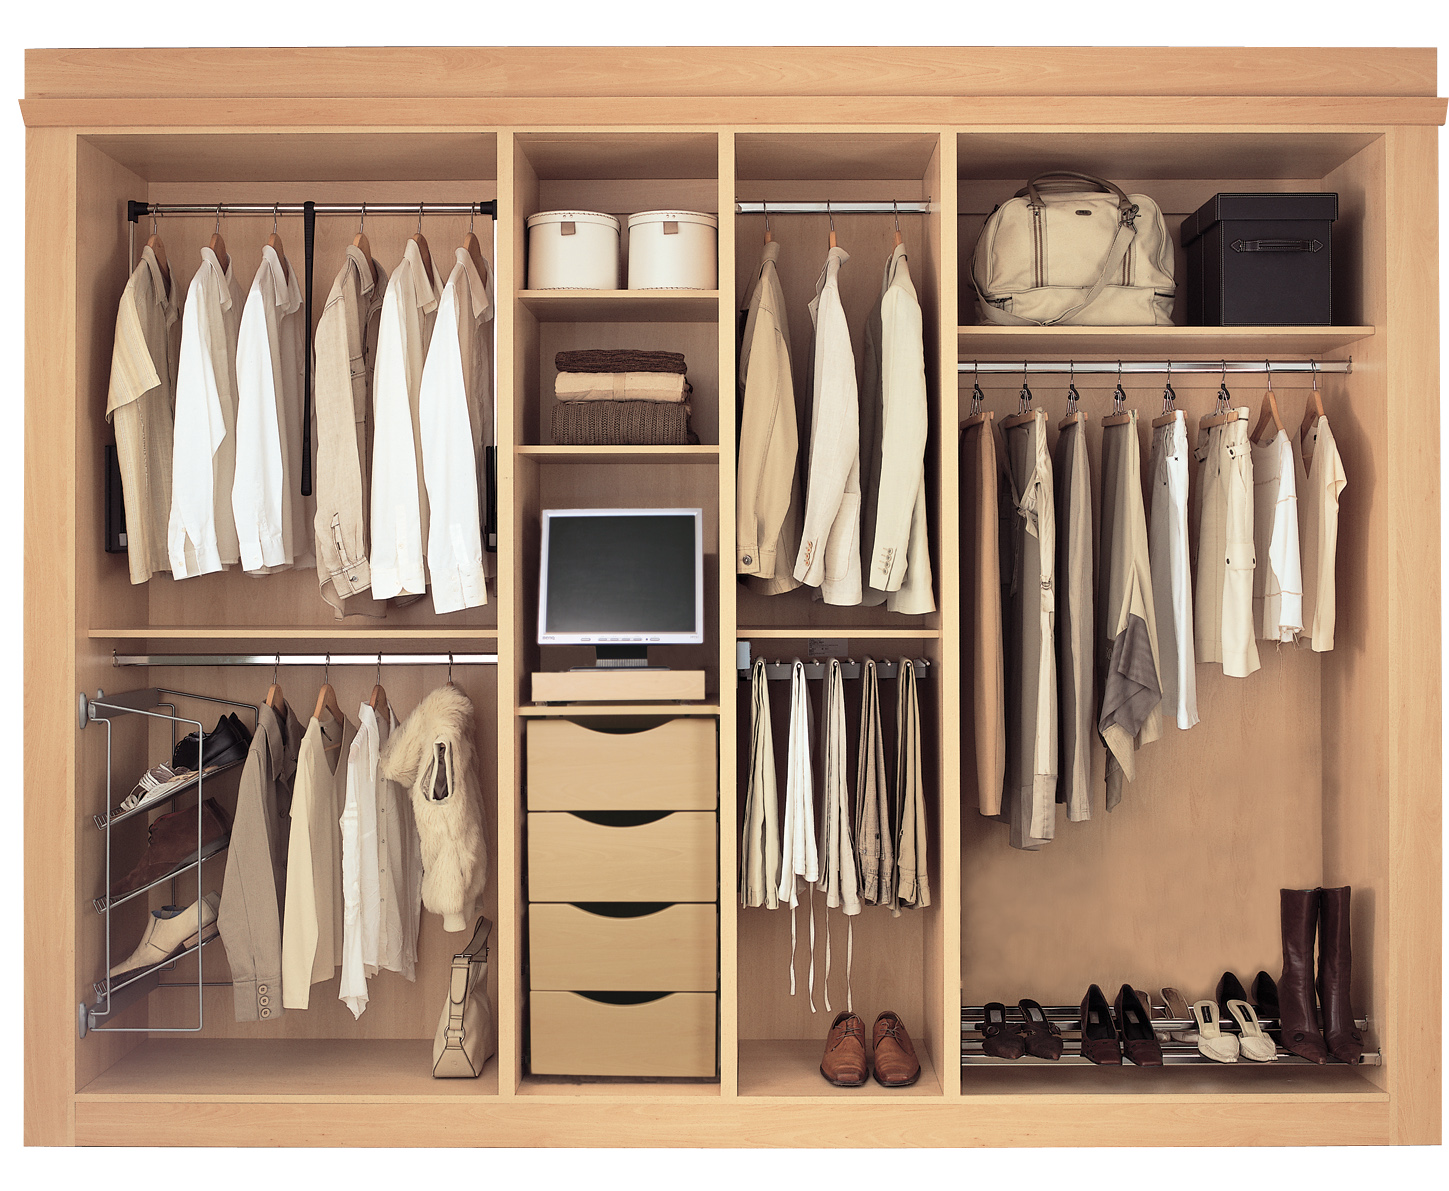 Wardrobe excelsior furniture Best wardrobe storage solutions